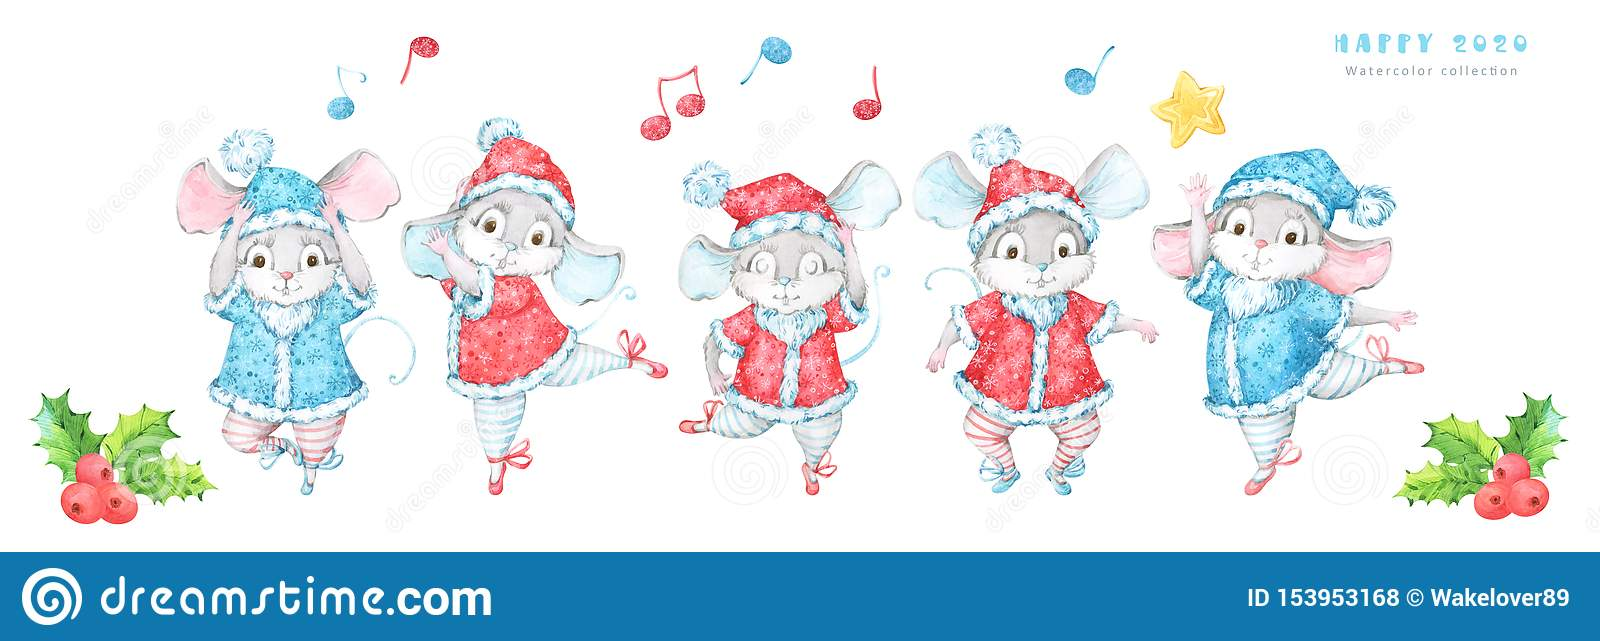 Cute and festive 2020 New Year and Christmas banner with five hand painted watercolor mice, rats, in red and blue costumes decorat